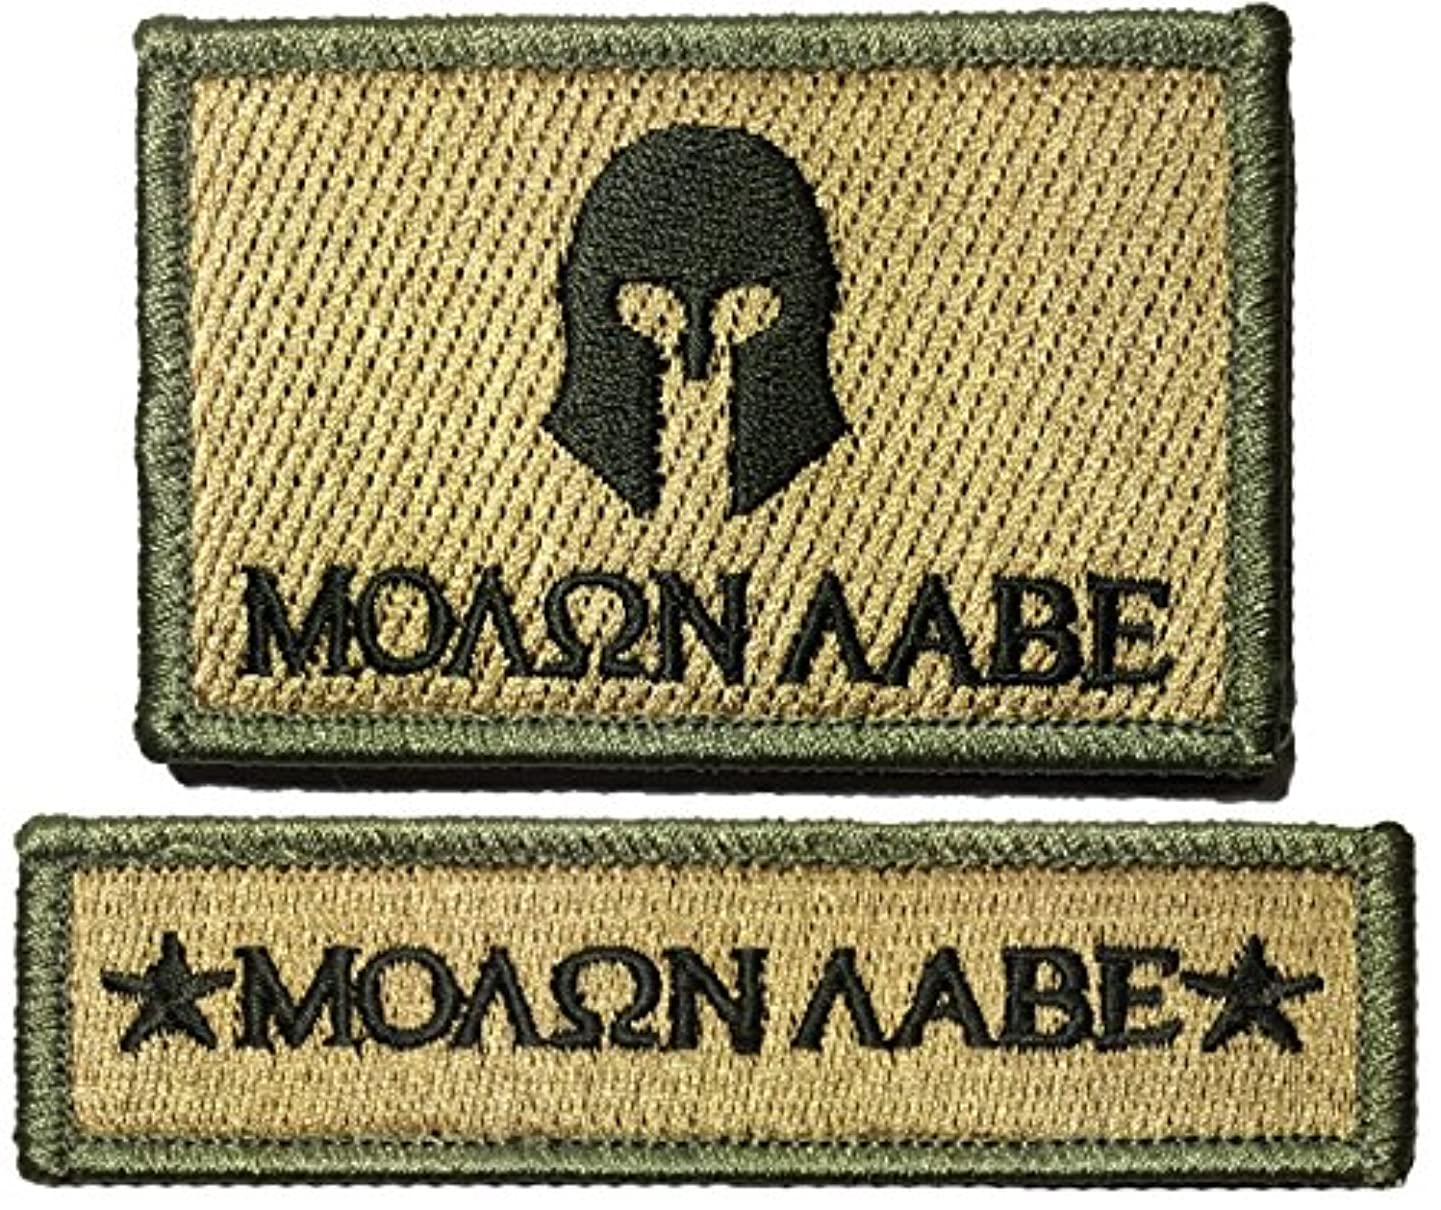 Tactical Molon Labe Spartan Morale and Tab Patch Hook and Loop Fasteners Backing - Multitan - By Ranger Return (RR-TACT-MOLN-LABE-ATAB-MULT)